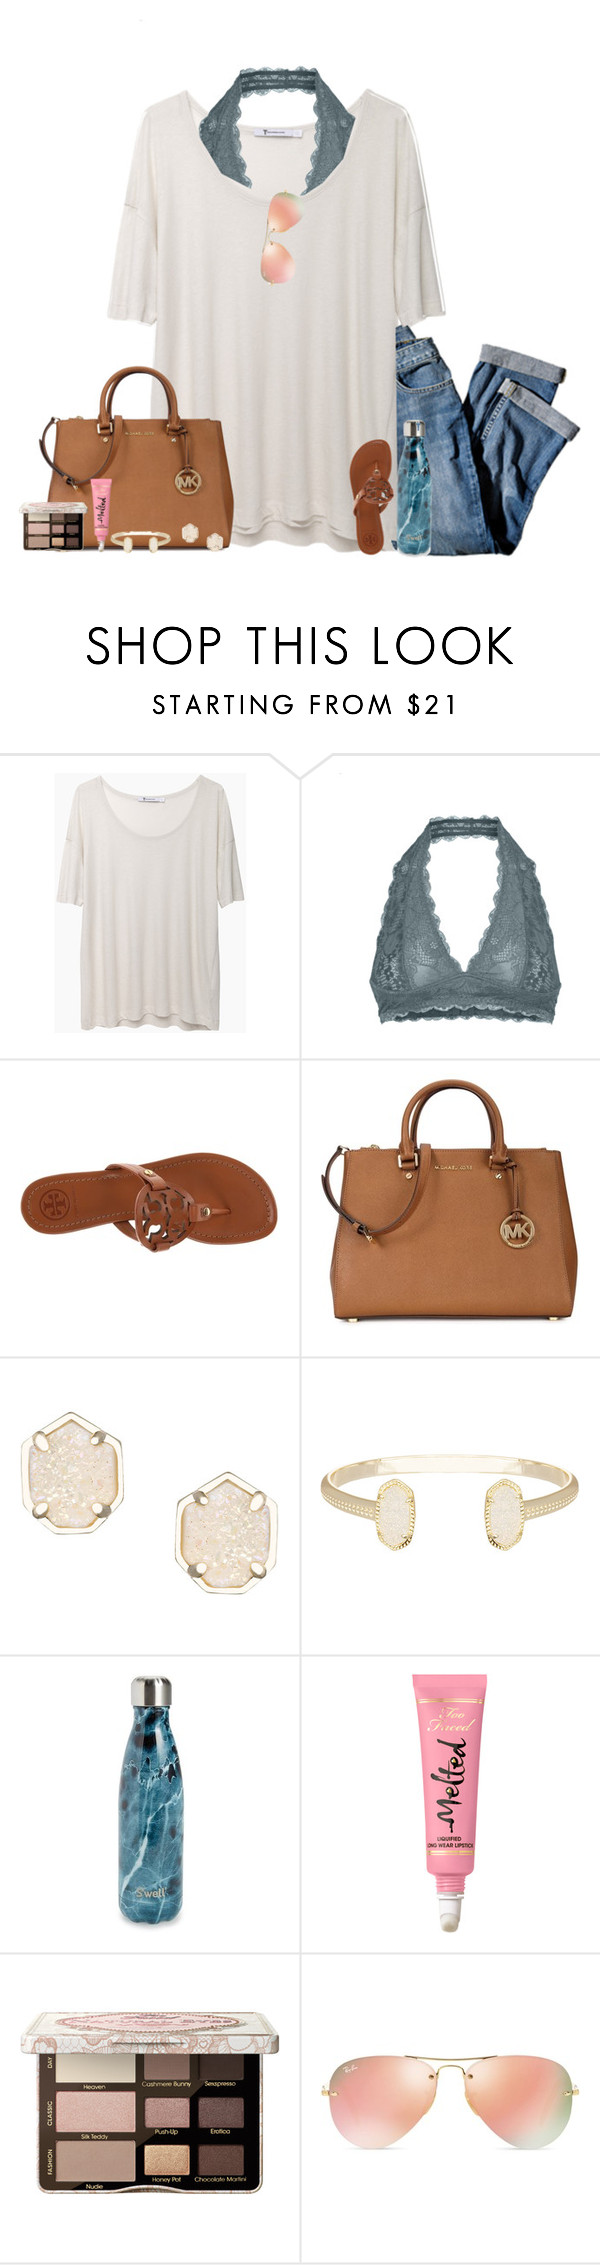 """""""Shopping """" by classicallyclaire ❤ liked on Polyvore featuring T By Alexander Wang, Free People, J.Jill, Tory Burch, Michael Kors, Kendra Scott, S'well, Too Faced Cosmetics, Ray-Ban and springbreakformaggie"""